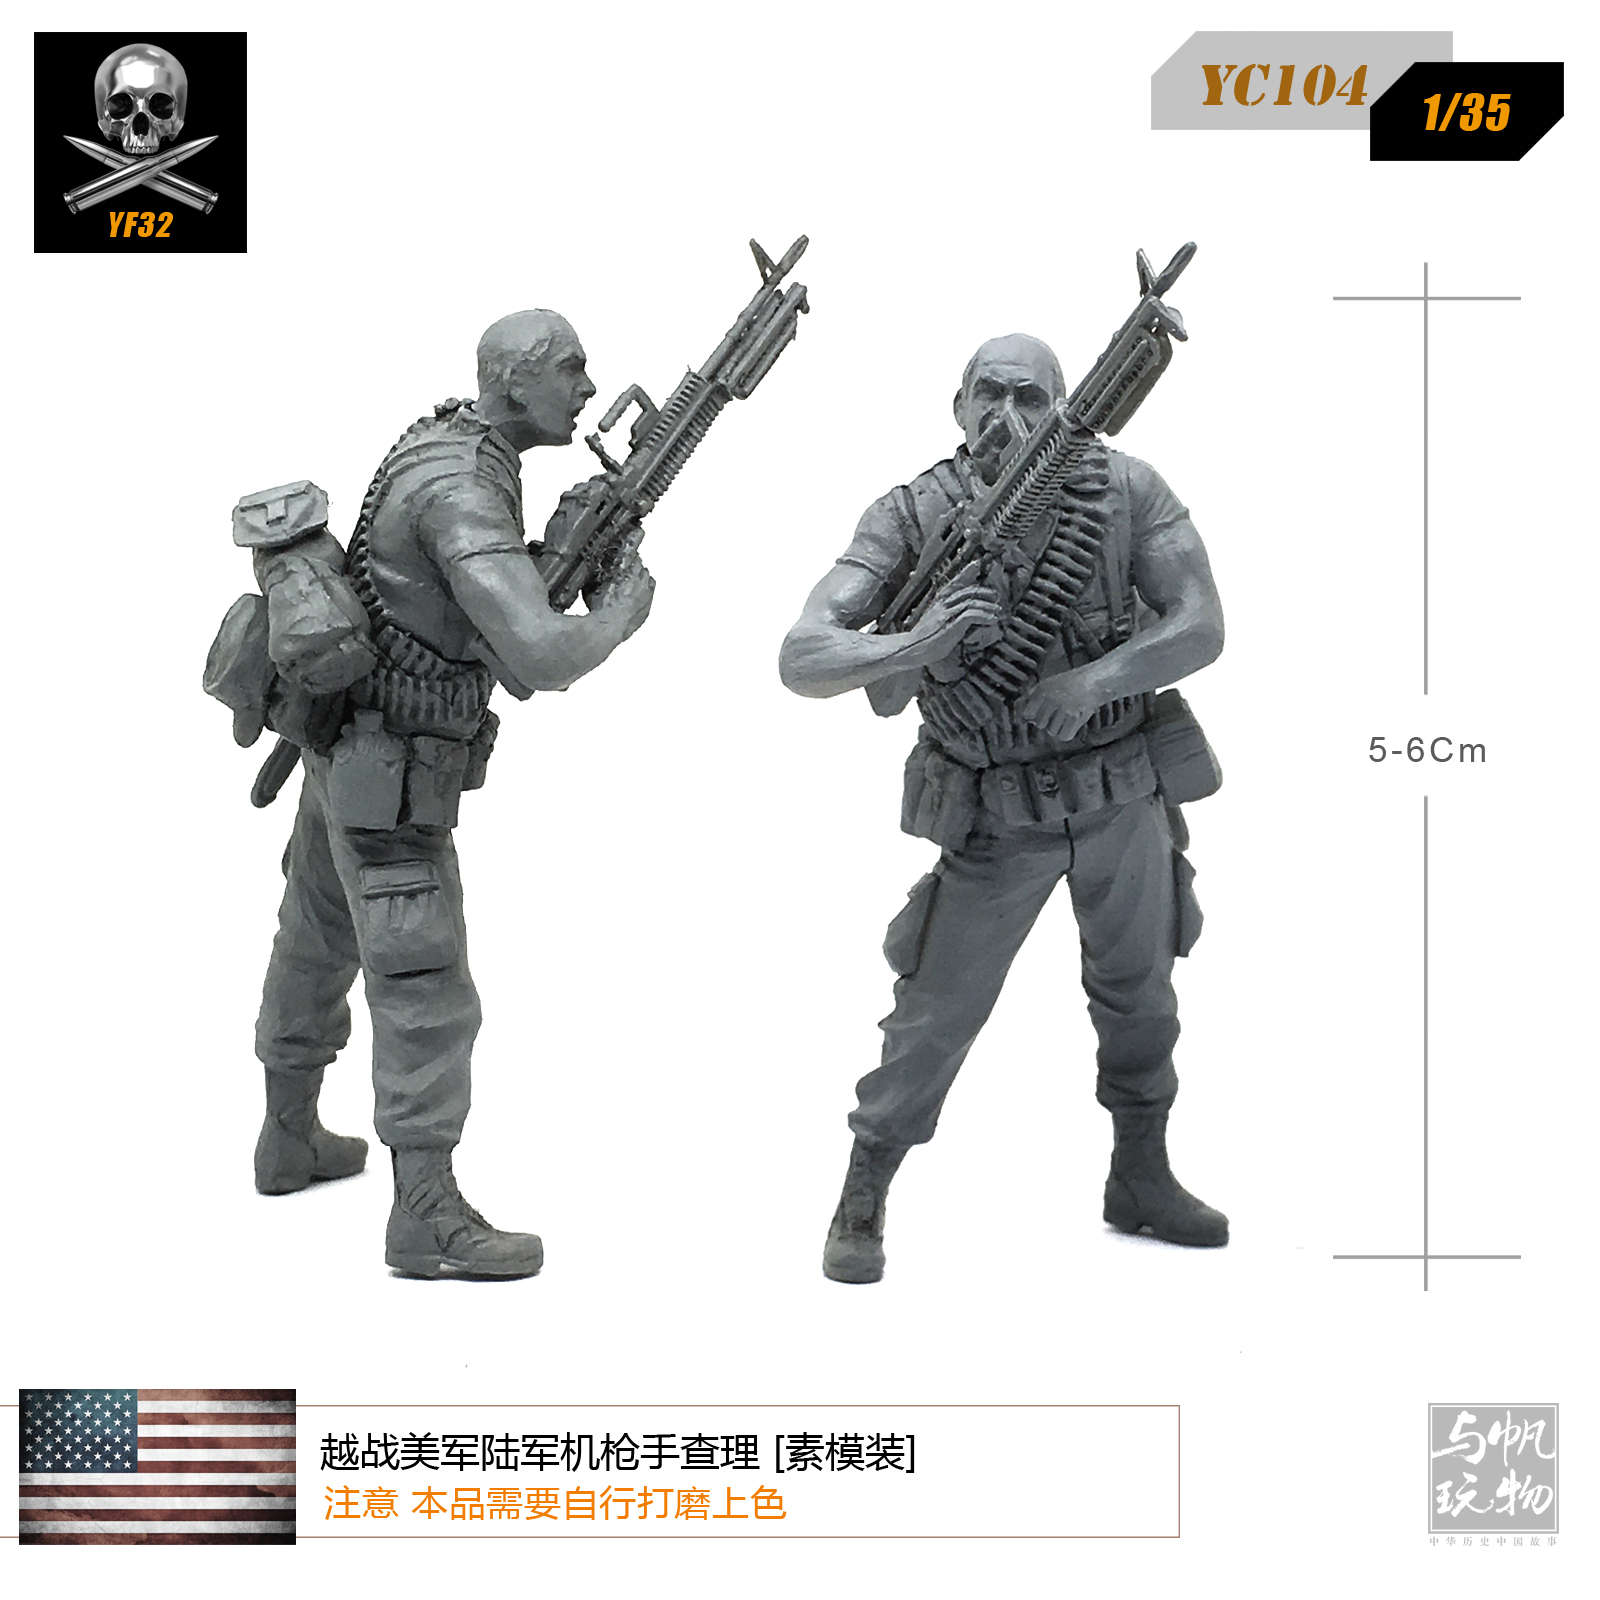 1/35 Vietnam War US Army Machine Shooter Charlie Resins YC104 image